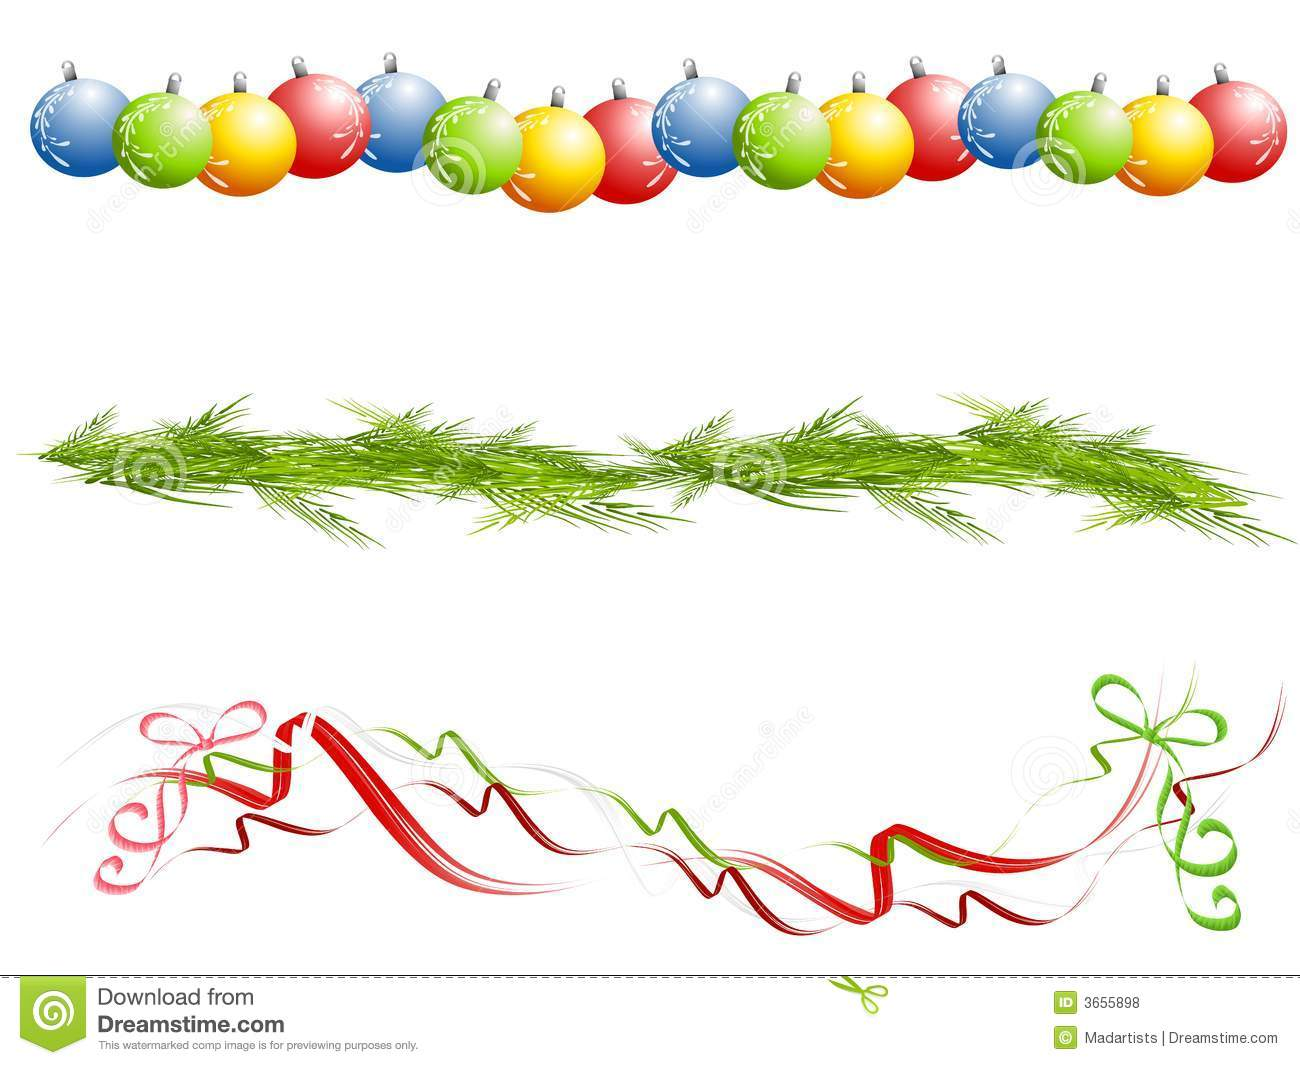 Christmas Clip Art Borders Various Isola-Christmas Clip Art Borders Various Isolated Christmas Borders Royalty-2